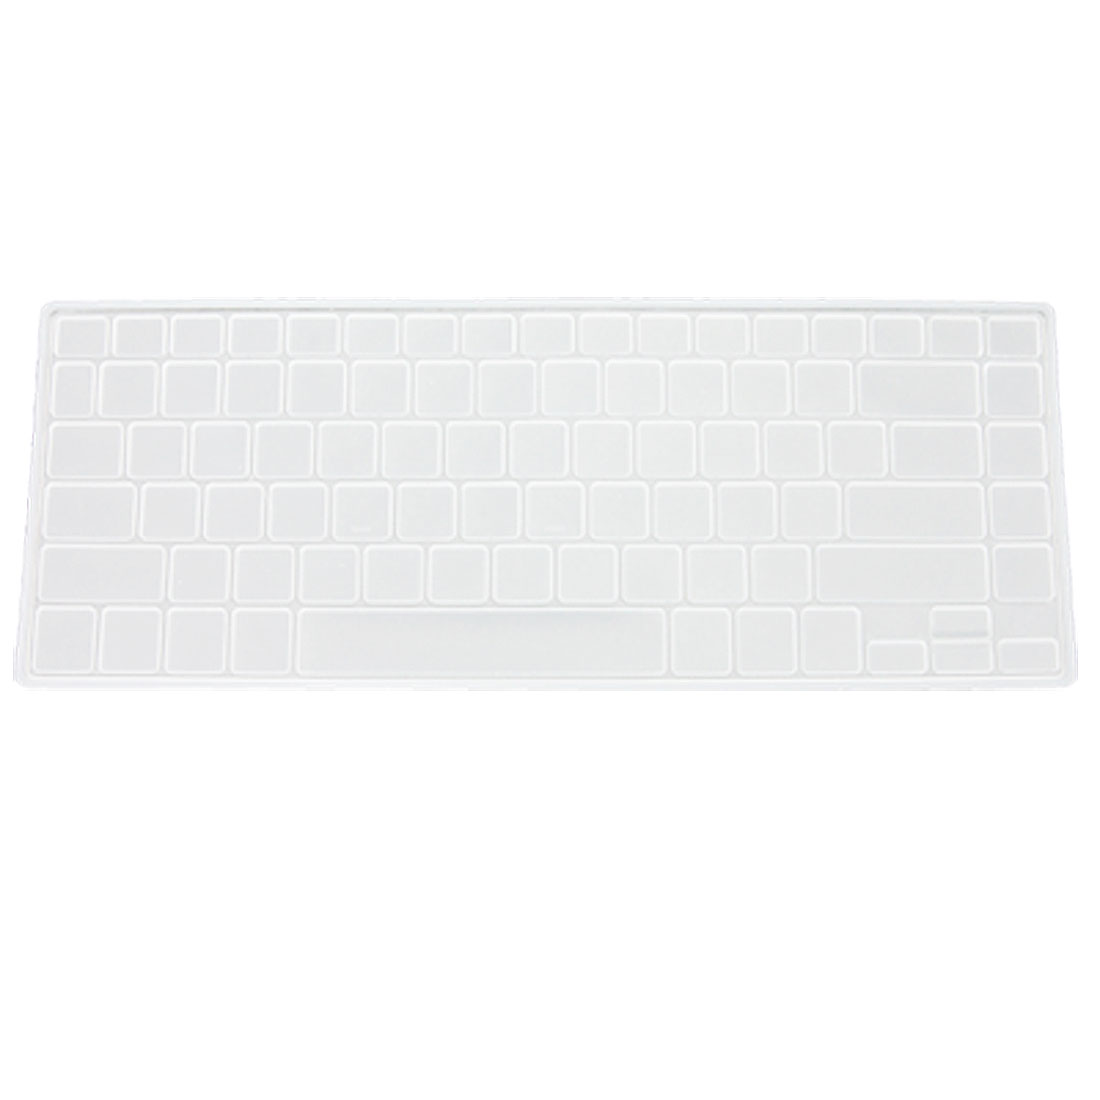 Keyboard Silicone Cover Skin Protector for Acer Aspire 4736